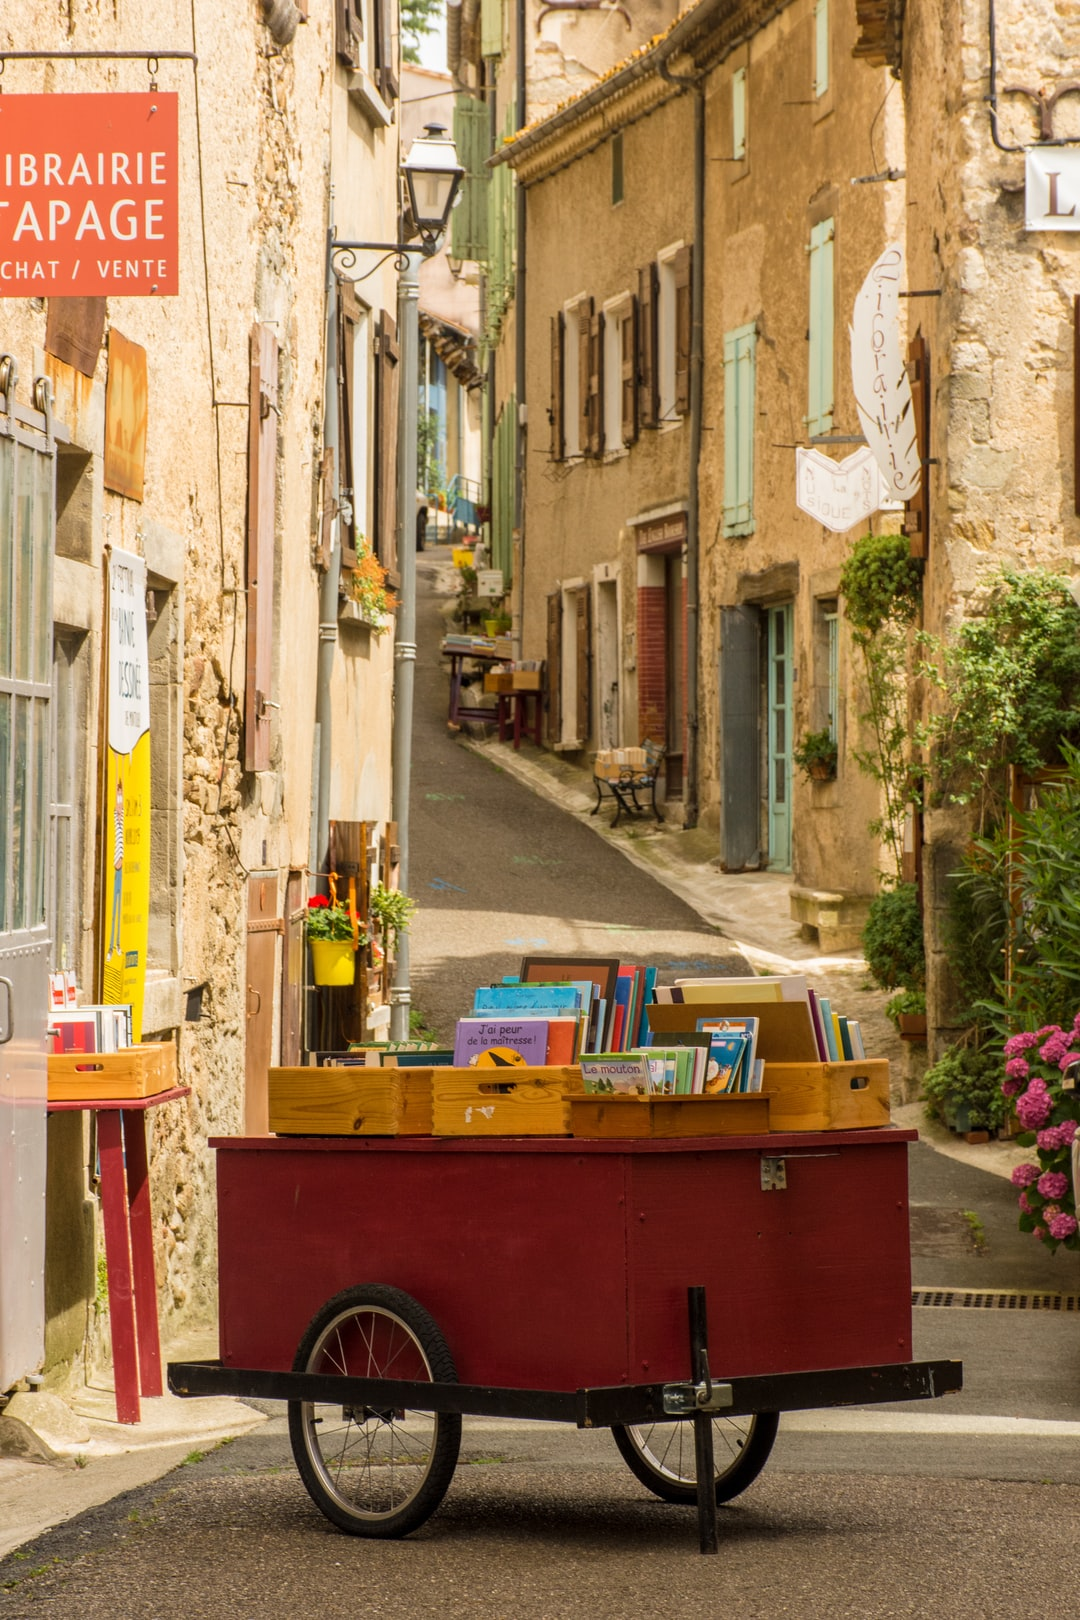 Streets in Montolieu, book towns of France